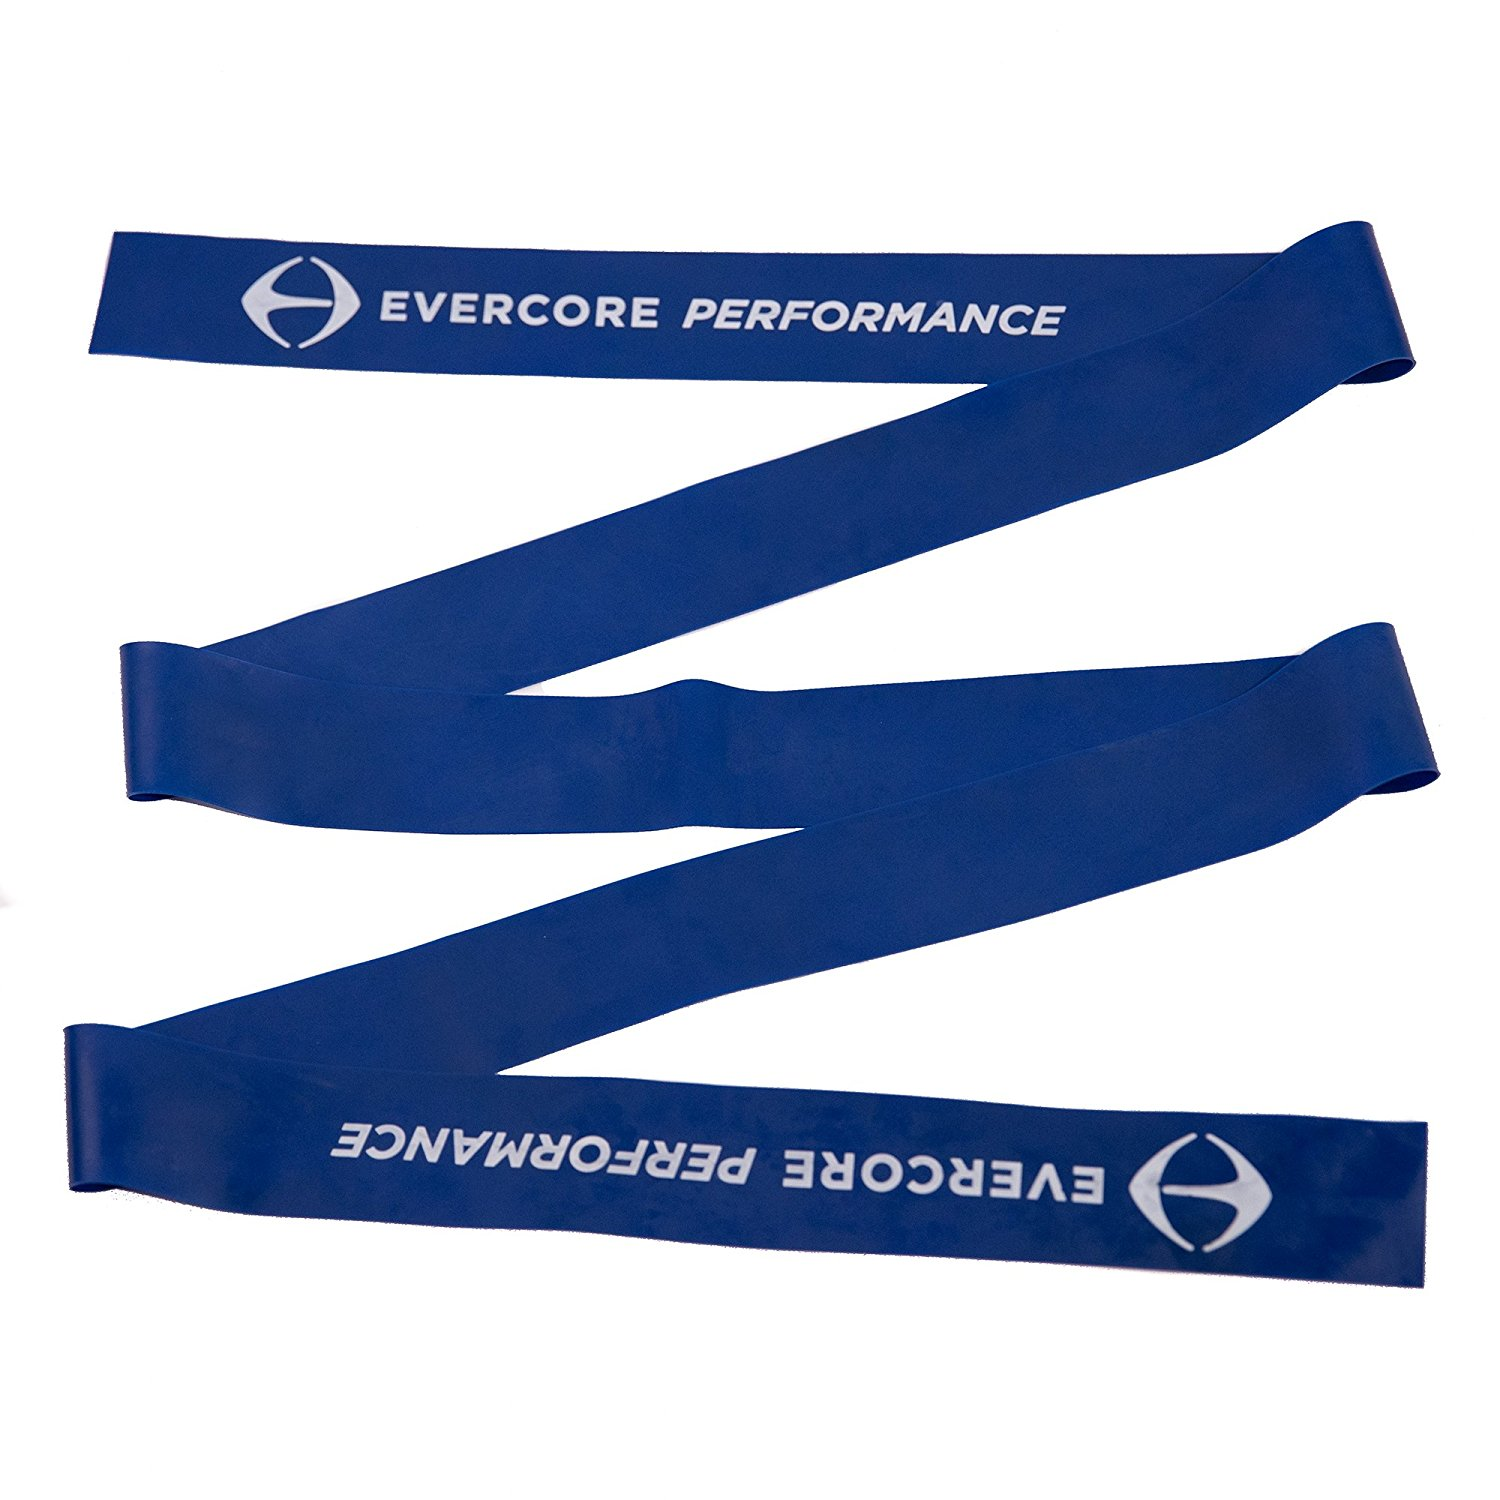 EVERCORE-Floss-Bands-Myofascial-Release-Improve-Blood-Flow-Increase-Mobility-CrossFit-workouts-Recover-from-Injurie-B072L2DKRM